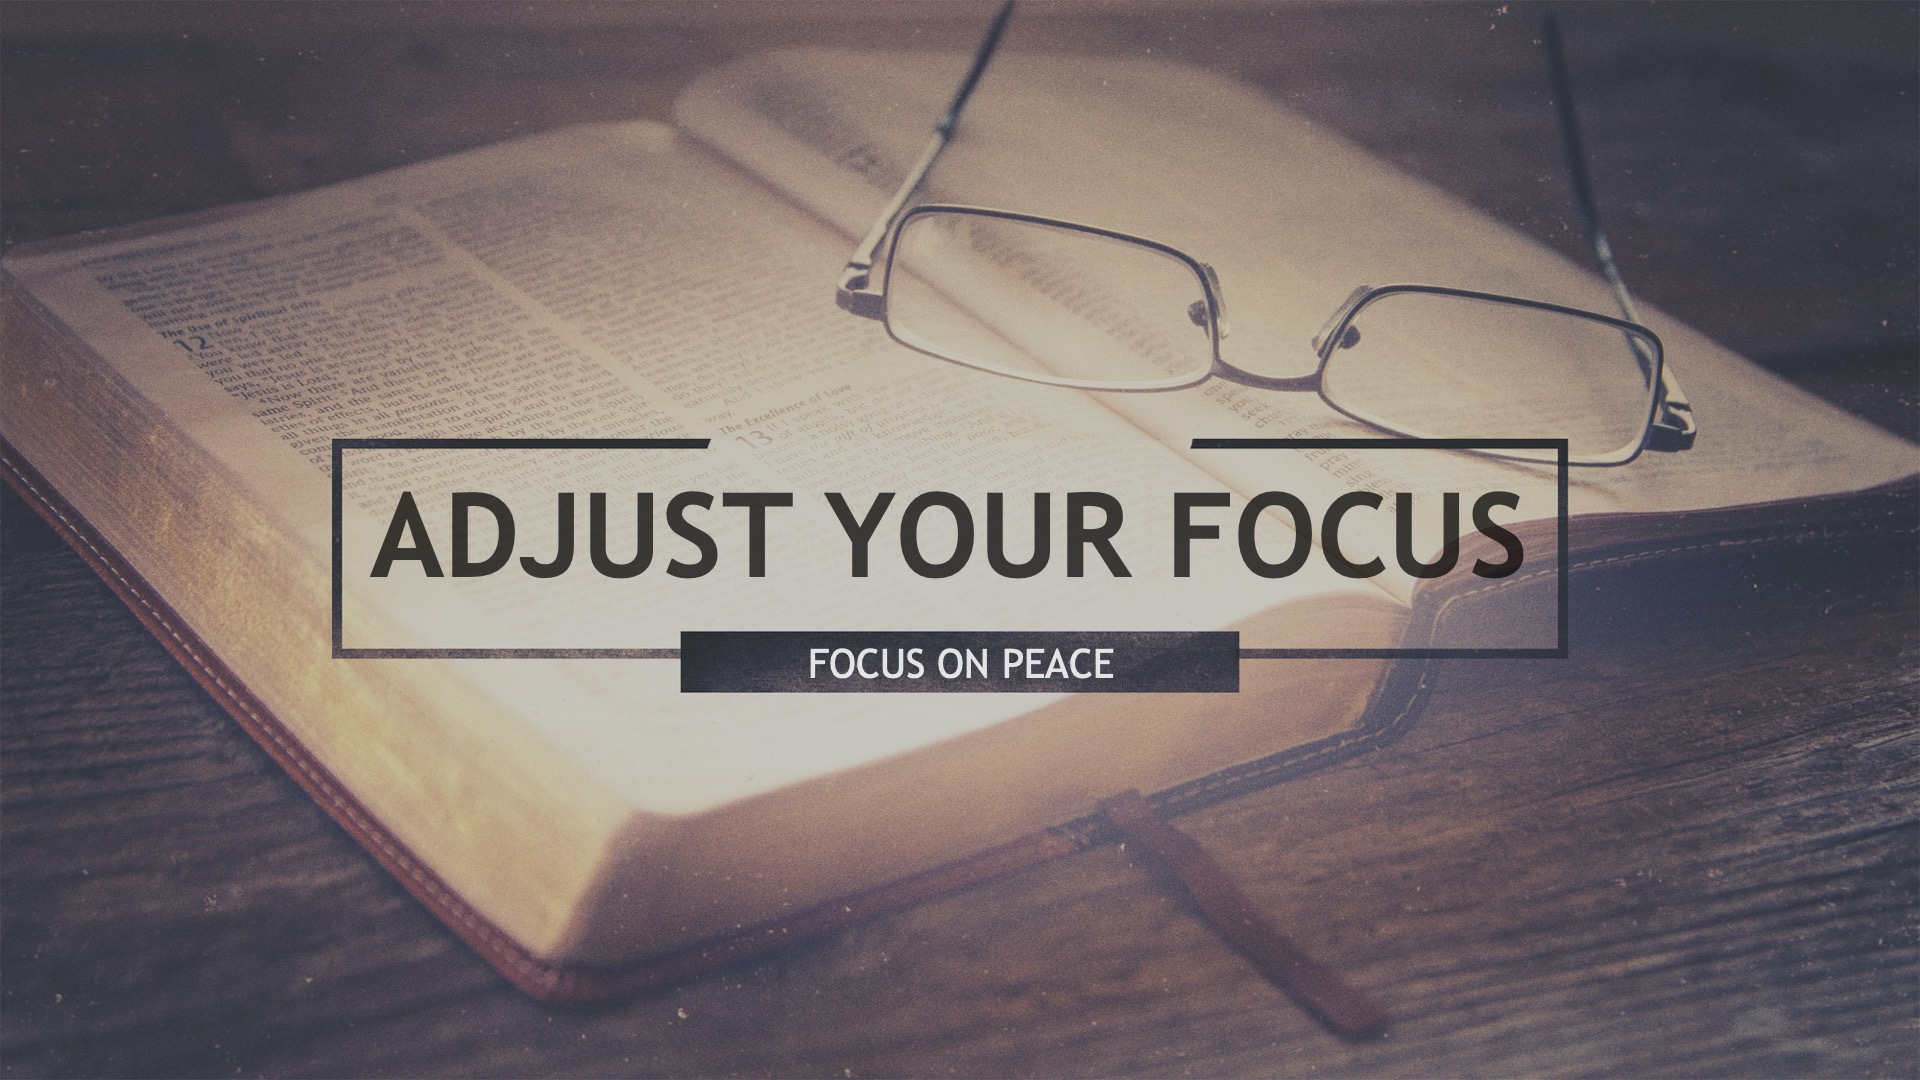 Adjust Your Focus Focus on Peace